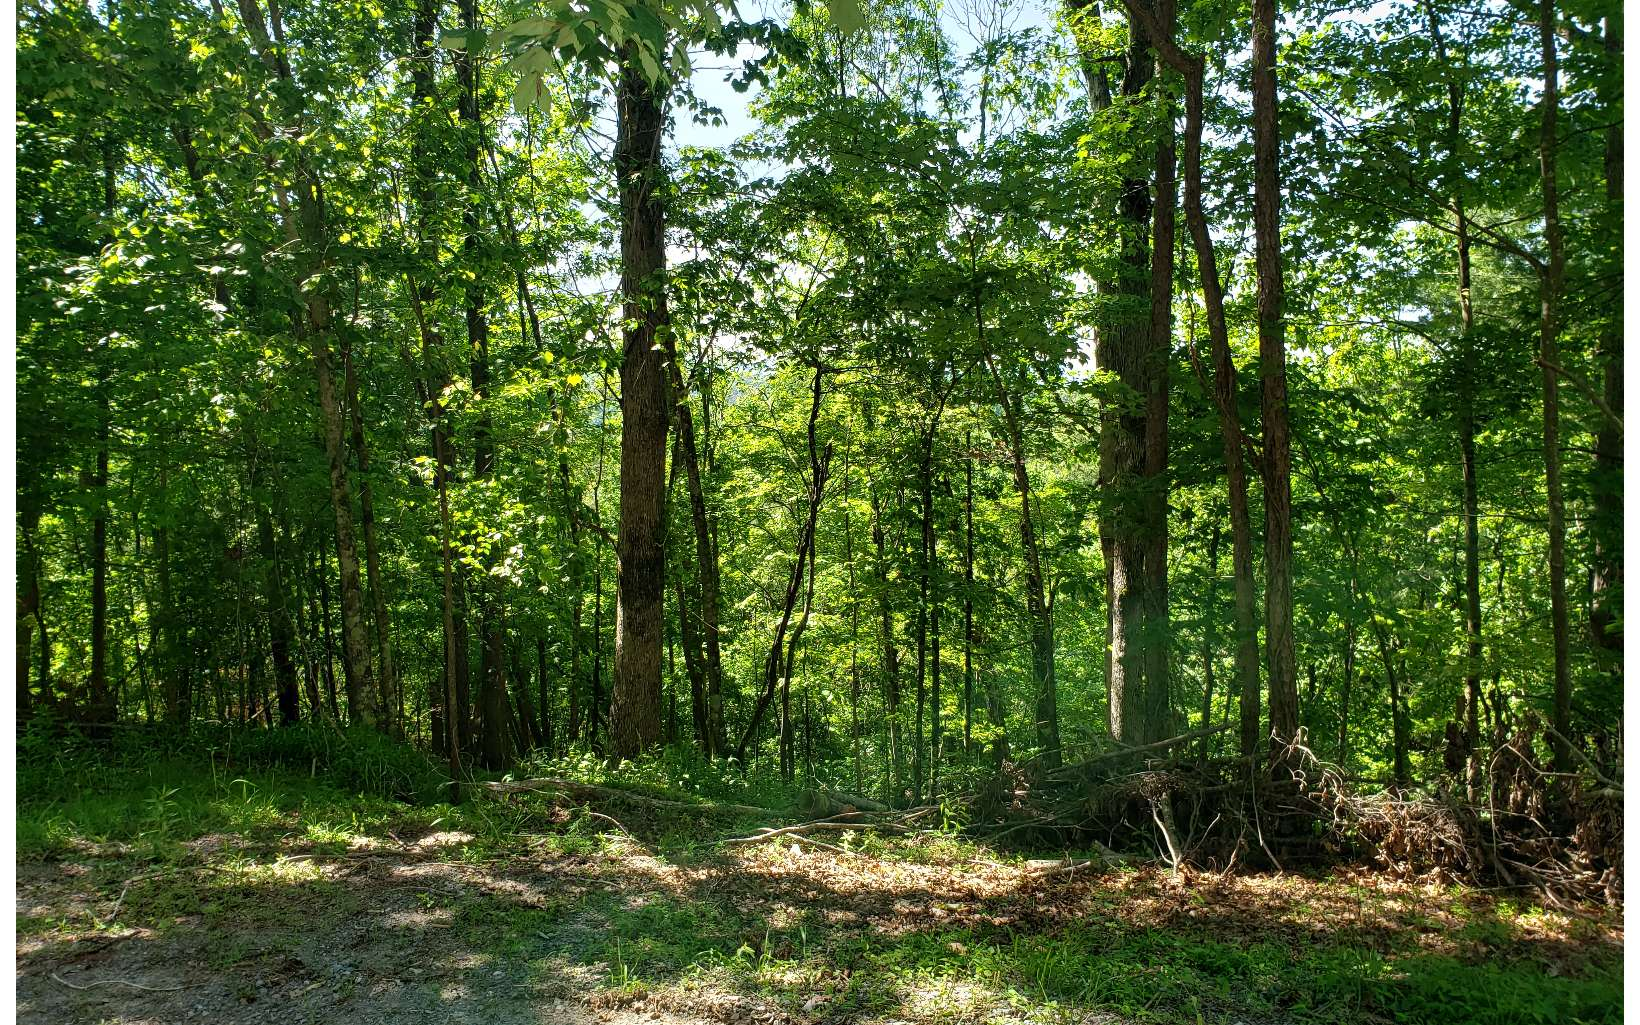 CHEROKEE CT LOT 461